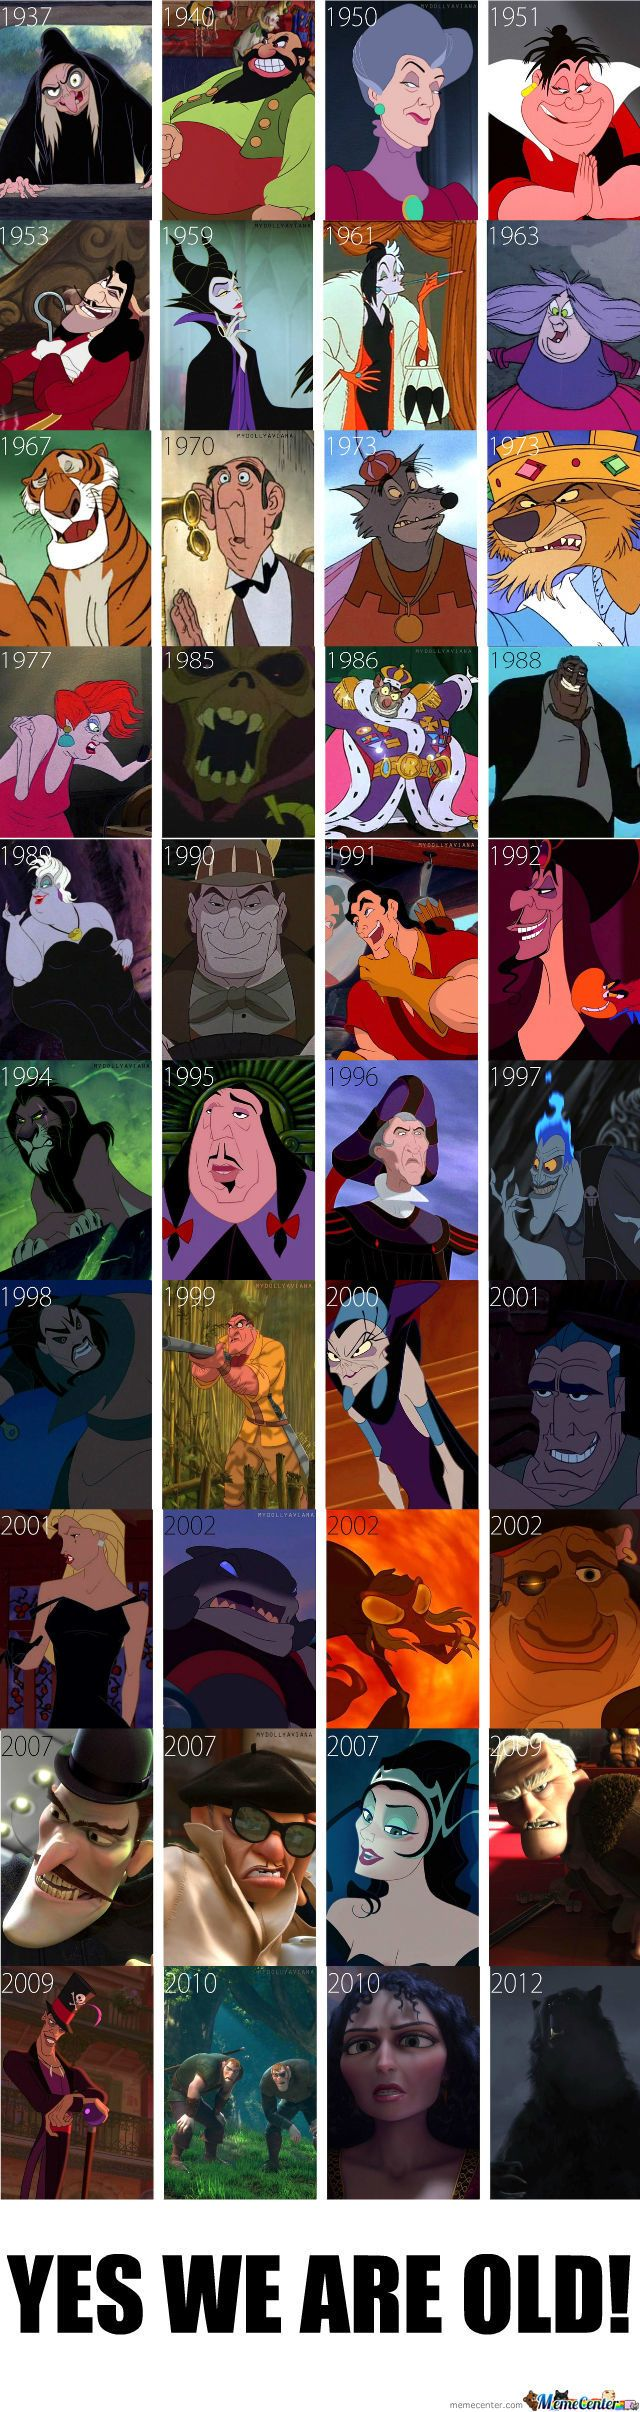 Disney Villians... My fave is Hades!!  (They left out a few Pixar's! And Mother Gothel is the main villain for Tangled... duh!)